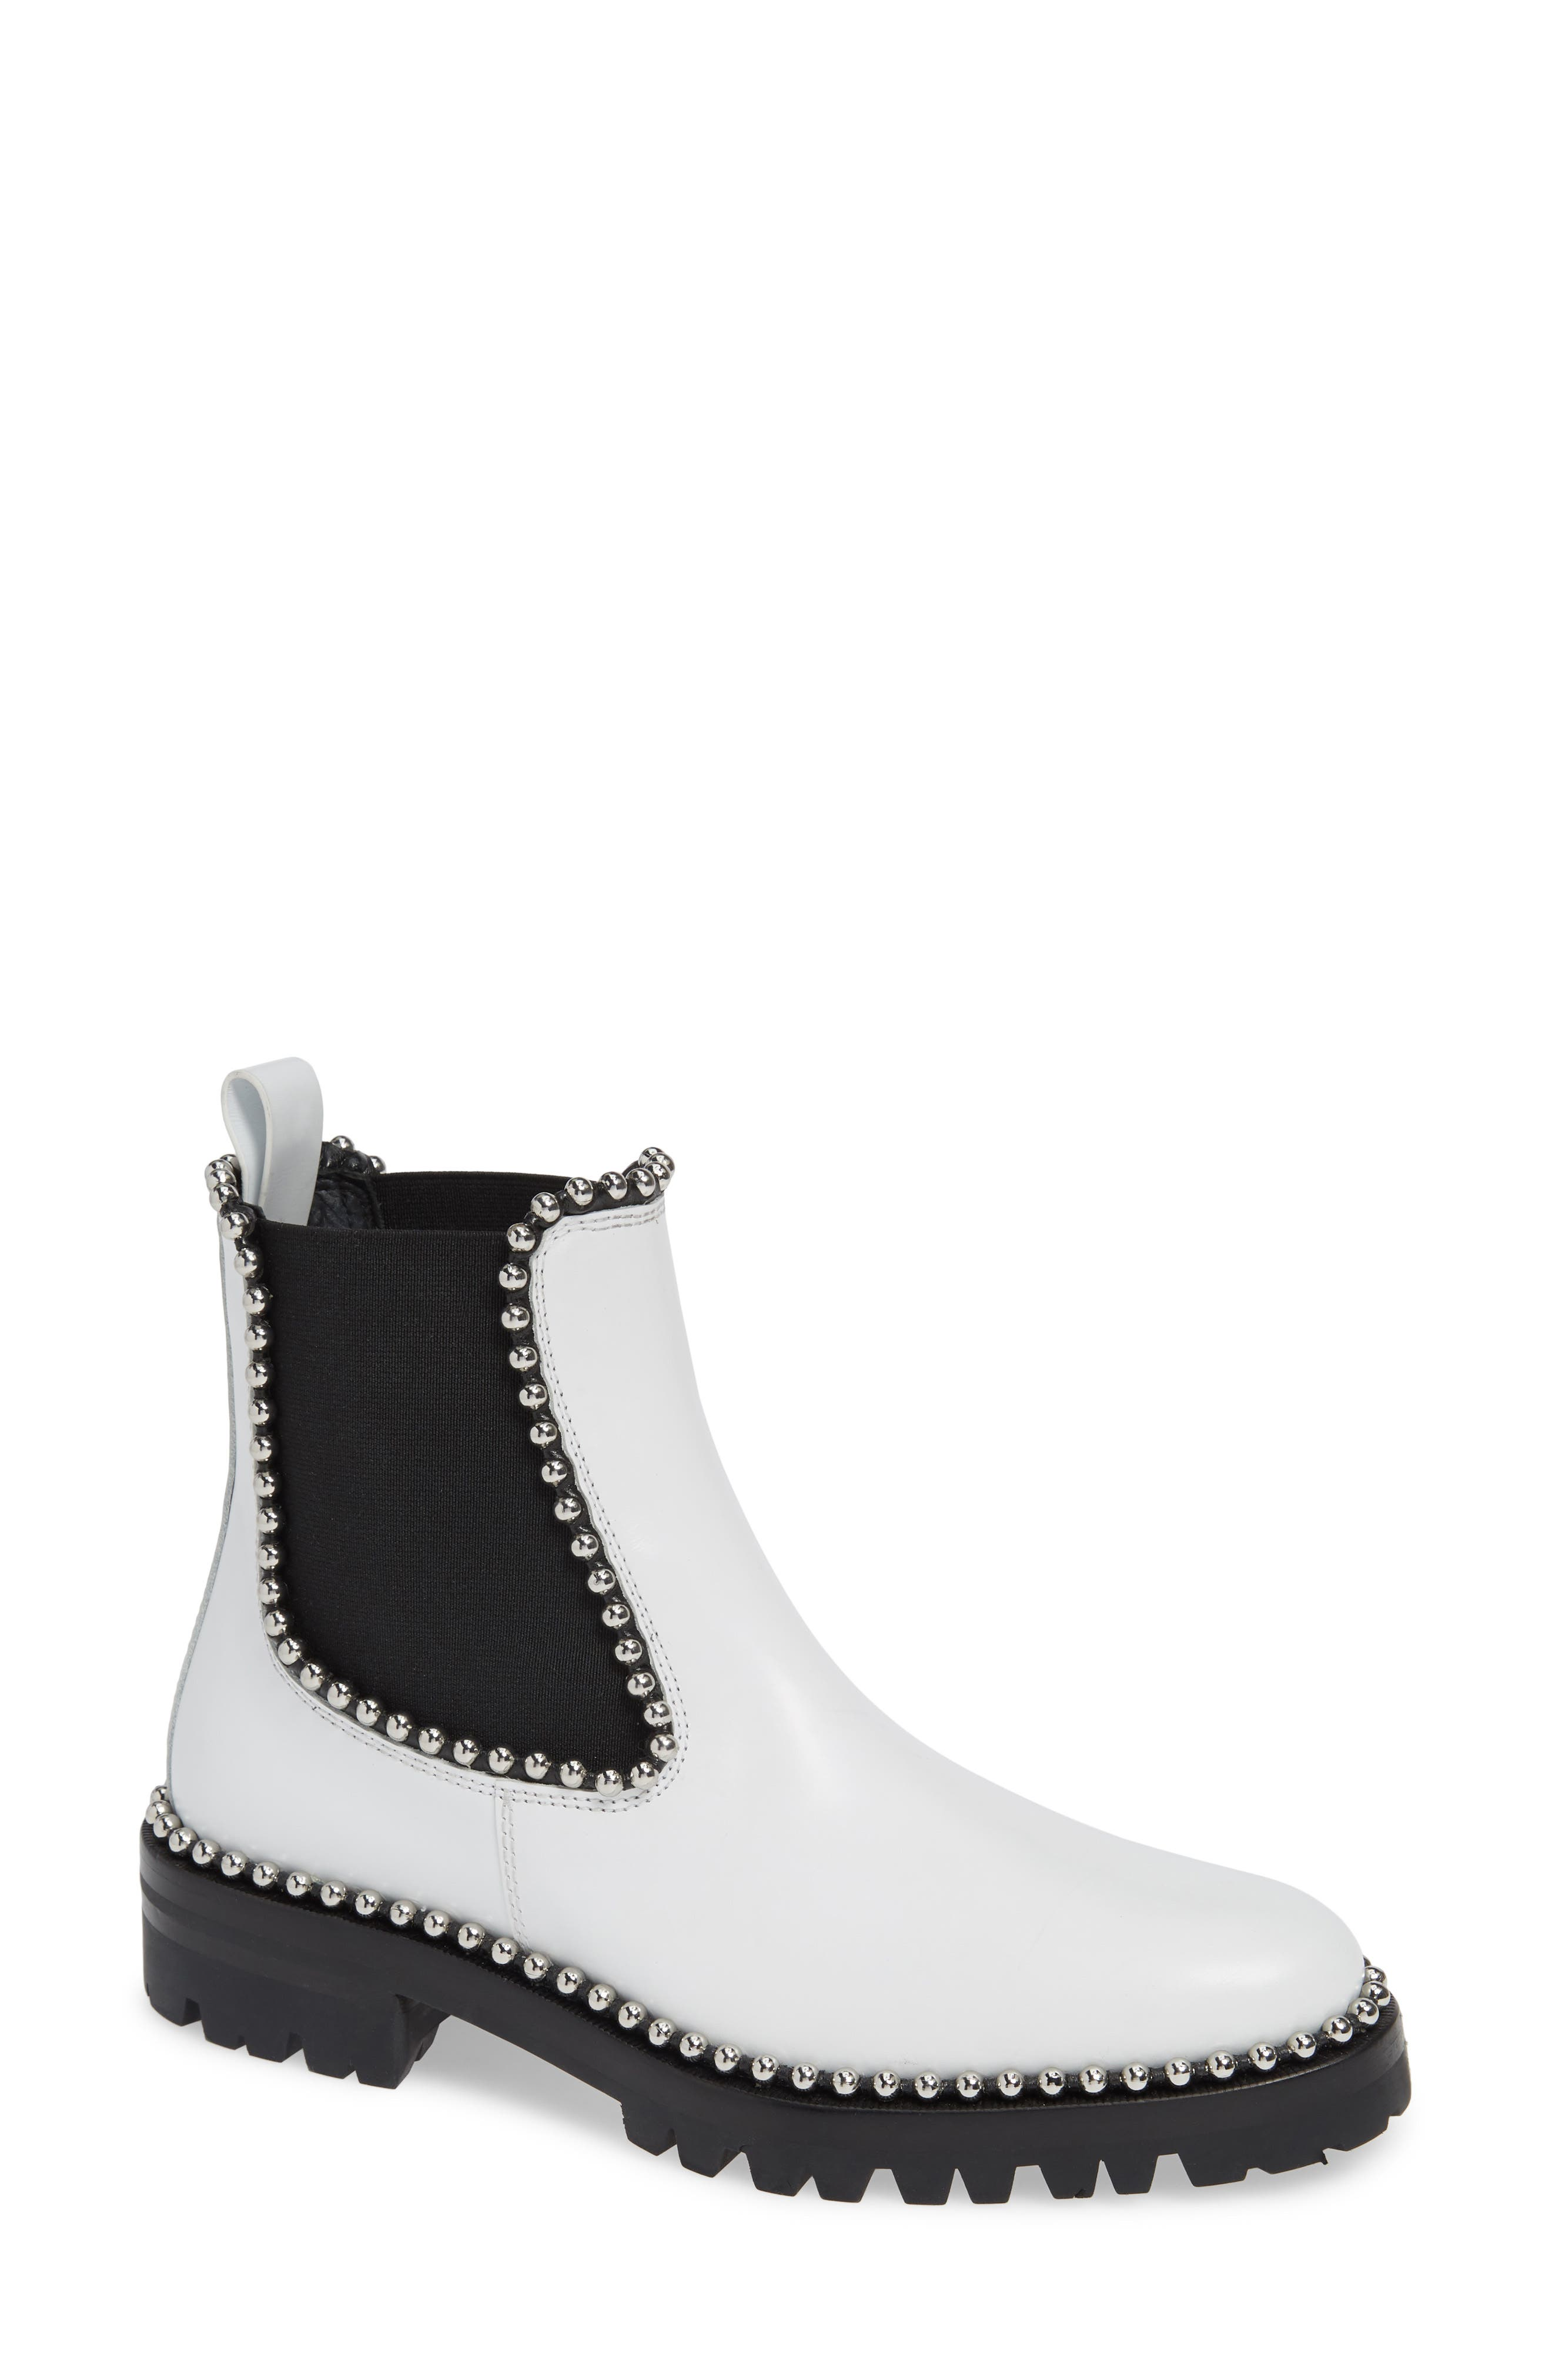 ALEXANDER WANG Spencer Chelsea Boot, Main, color, WHITE LEATHER